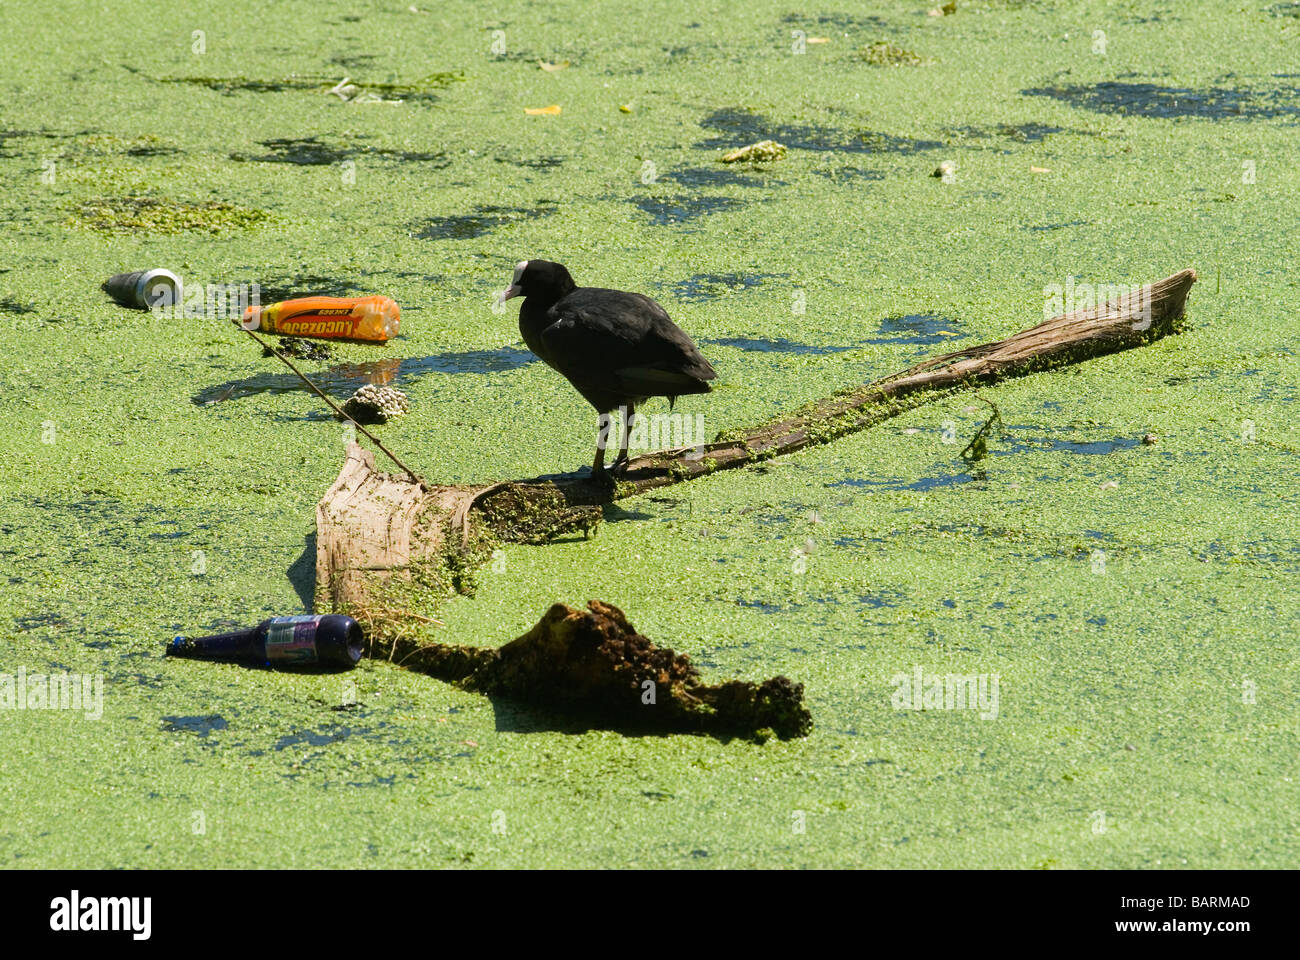 Moorhen Moorehen Morehen Moor Hen Stratford East London wildlife pollution - Stock Image